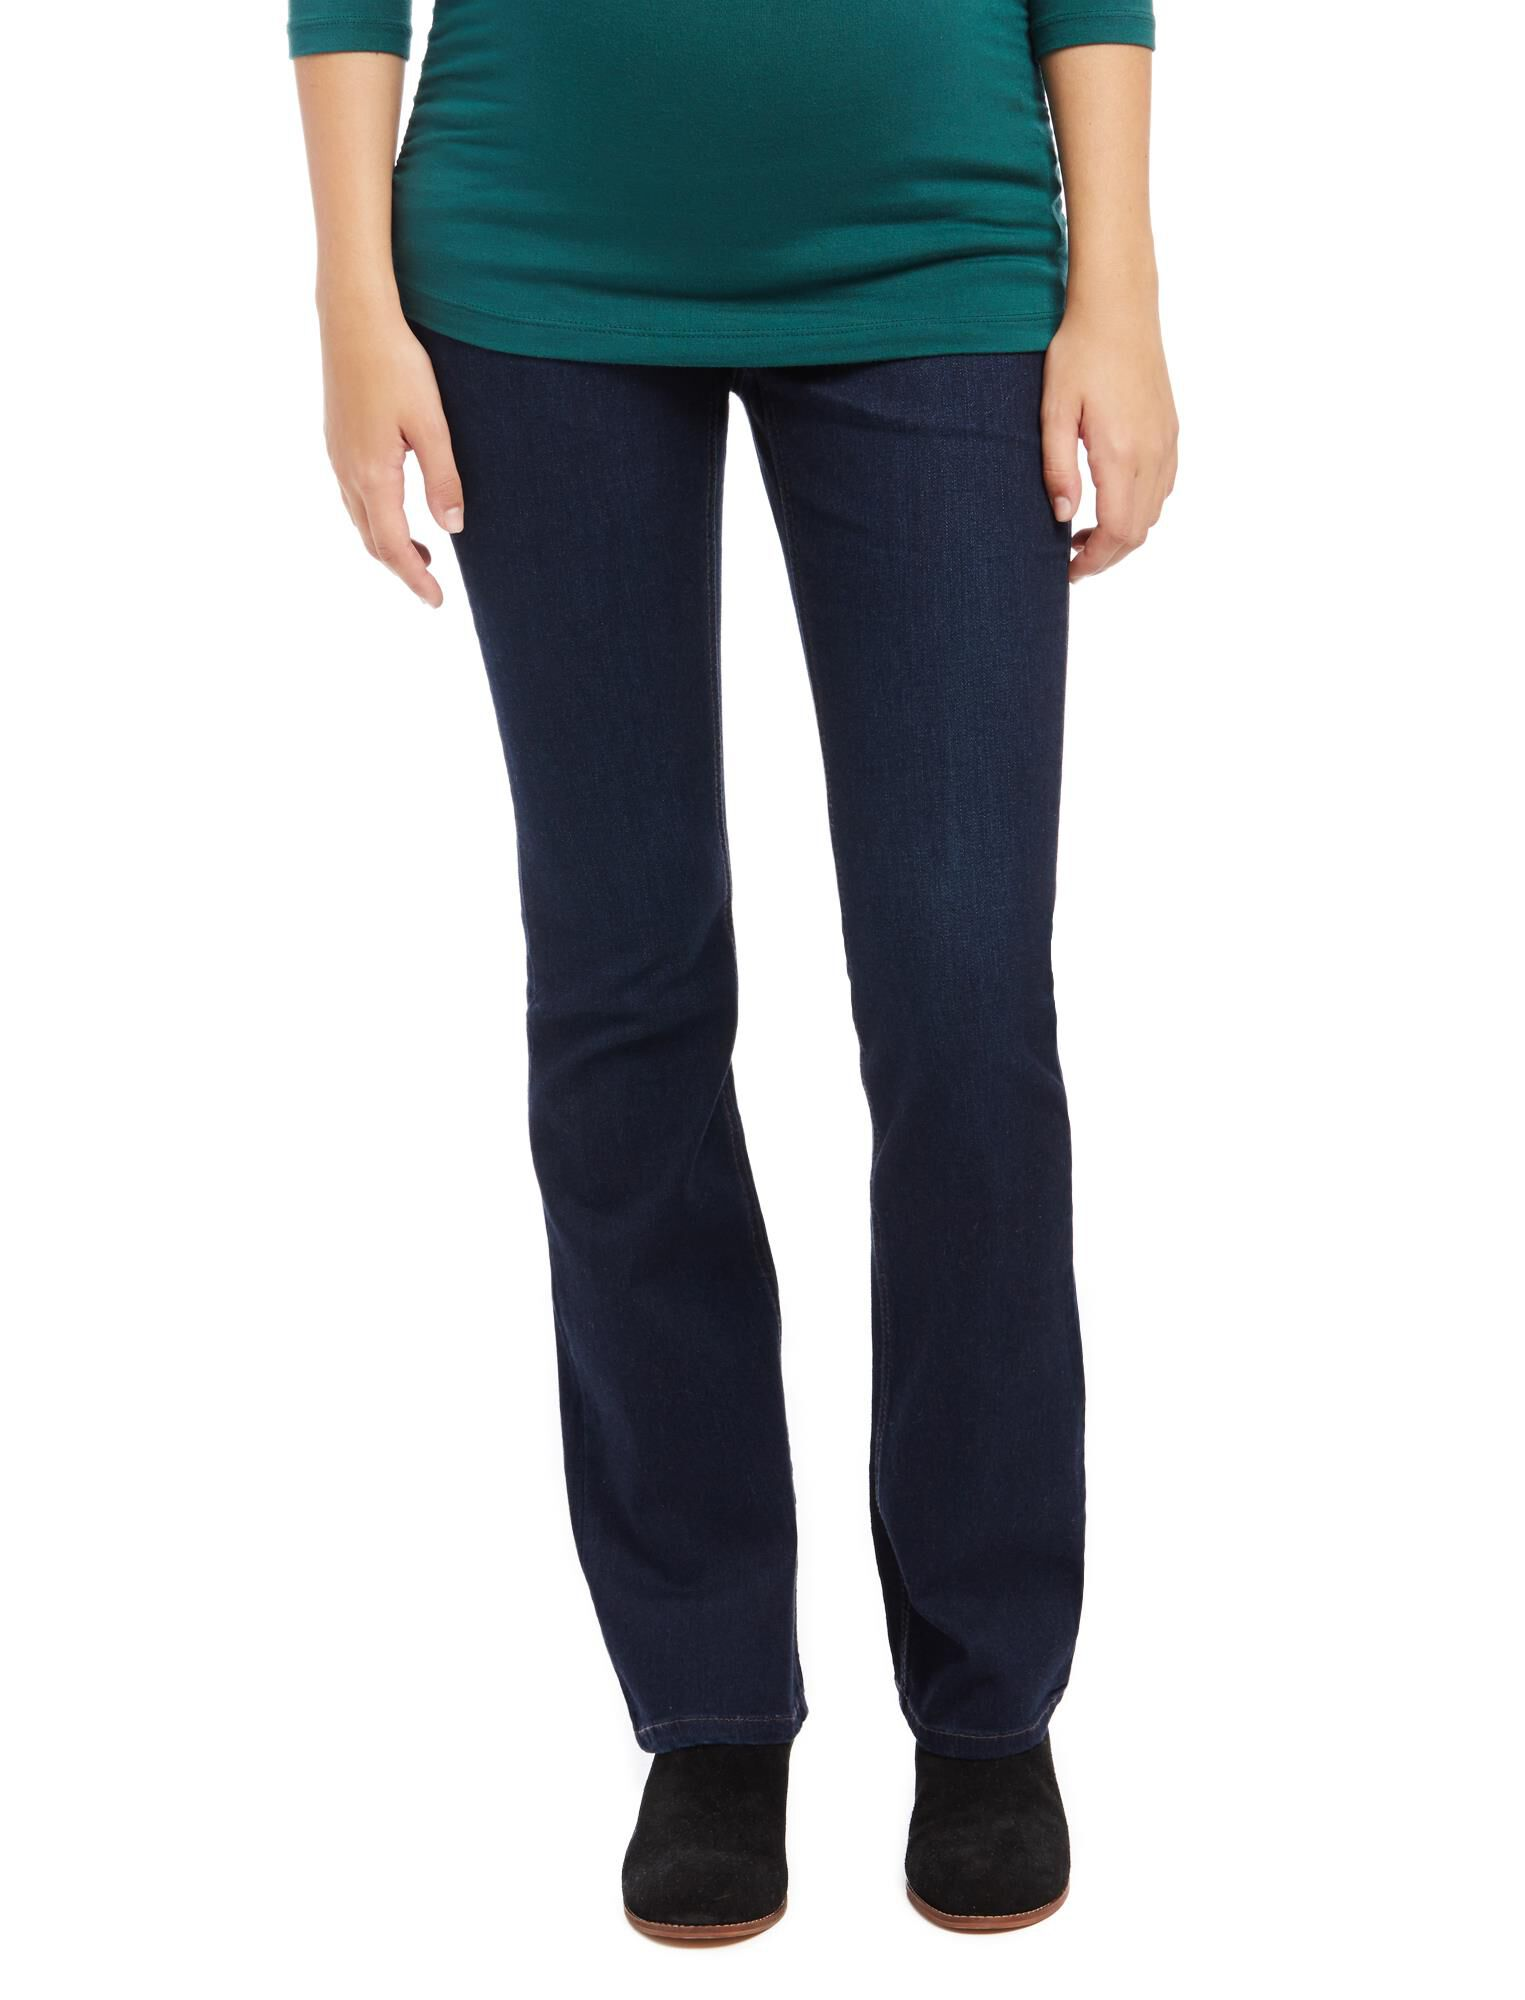 Jessica Simpson Secret Fit Belly Skinny Boot Maternity Jeans